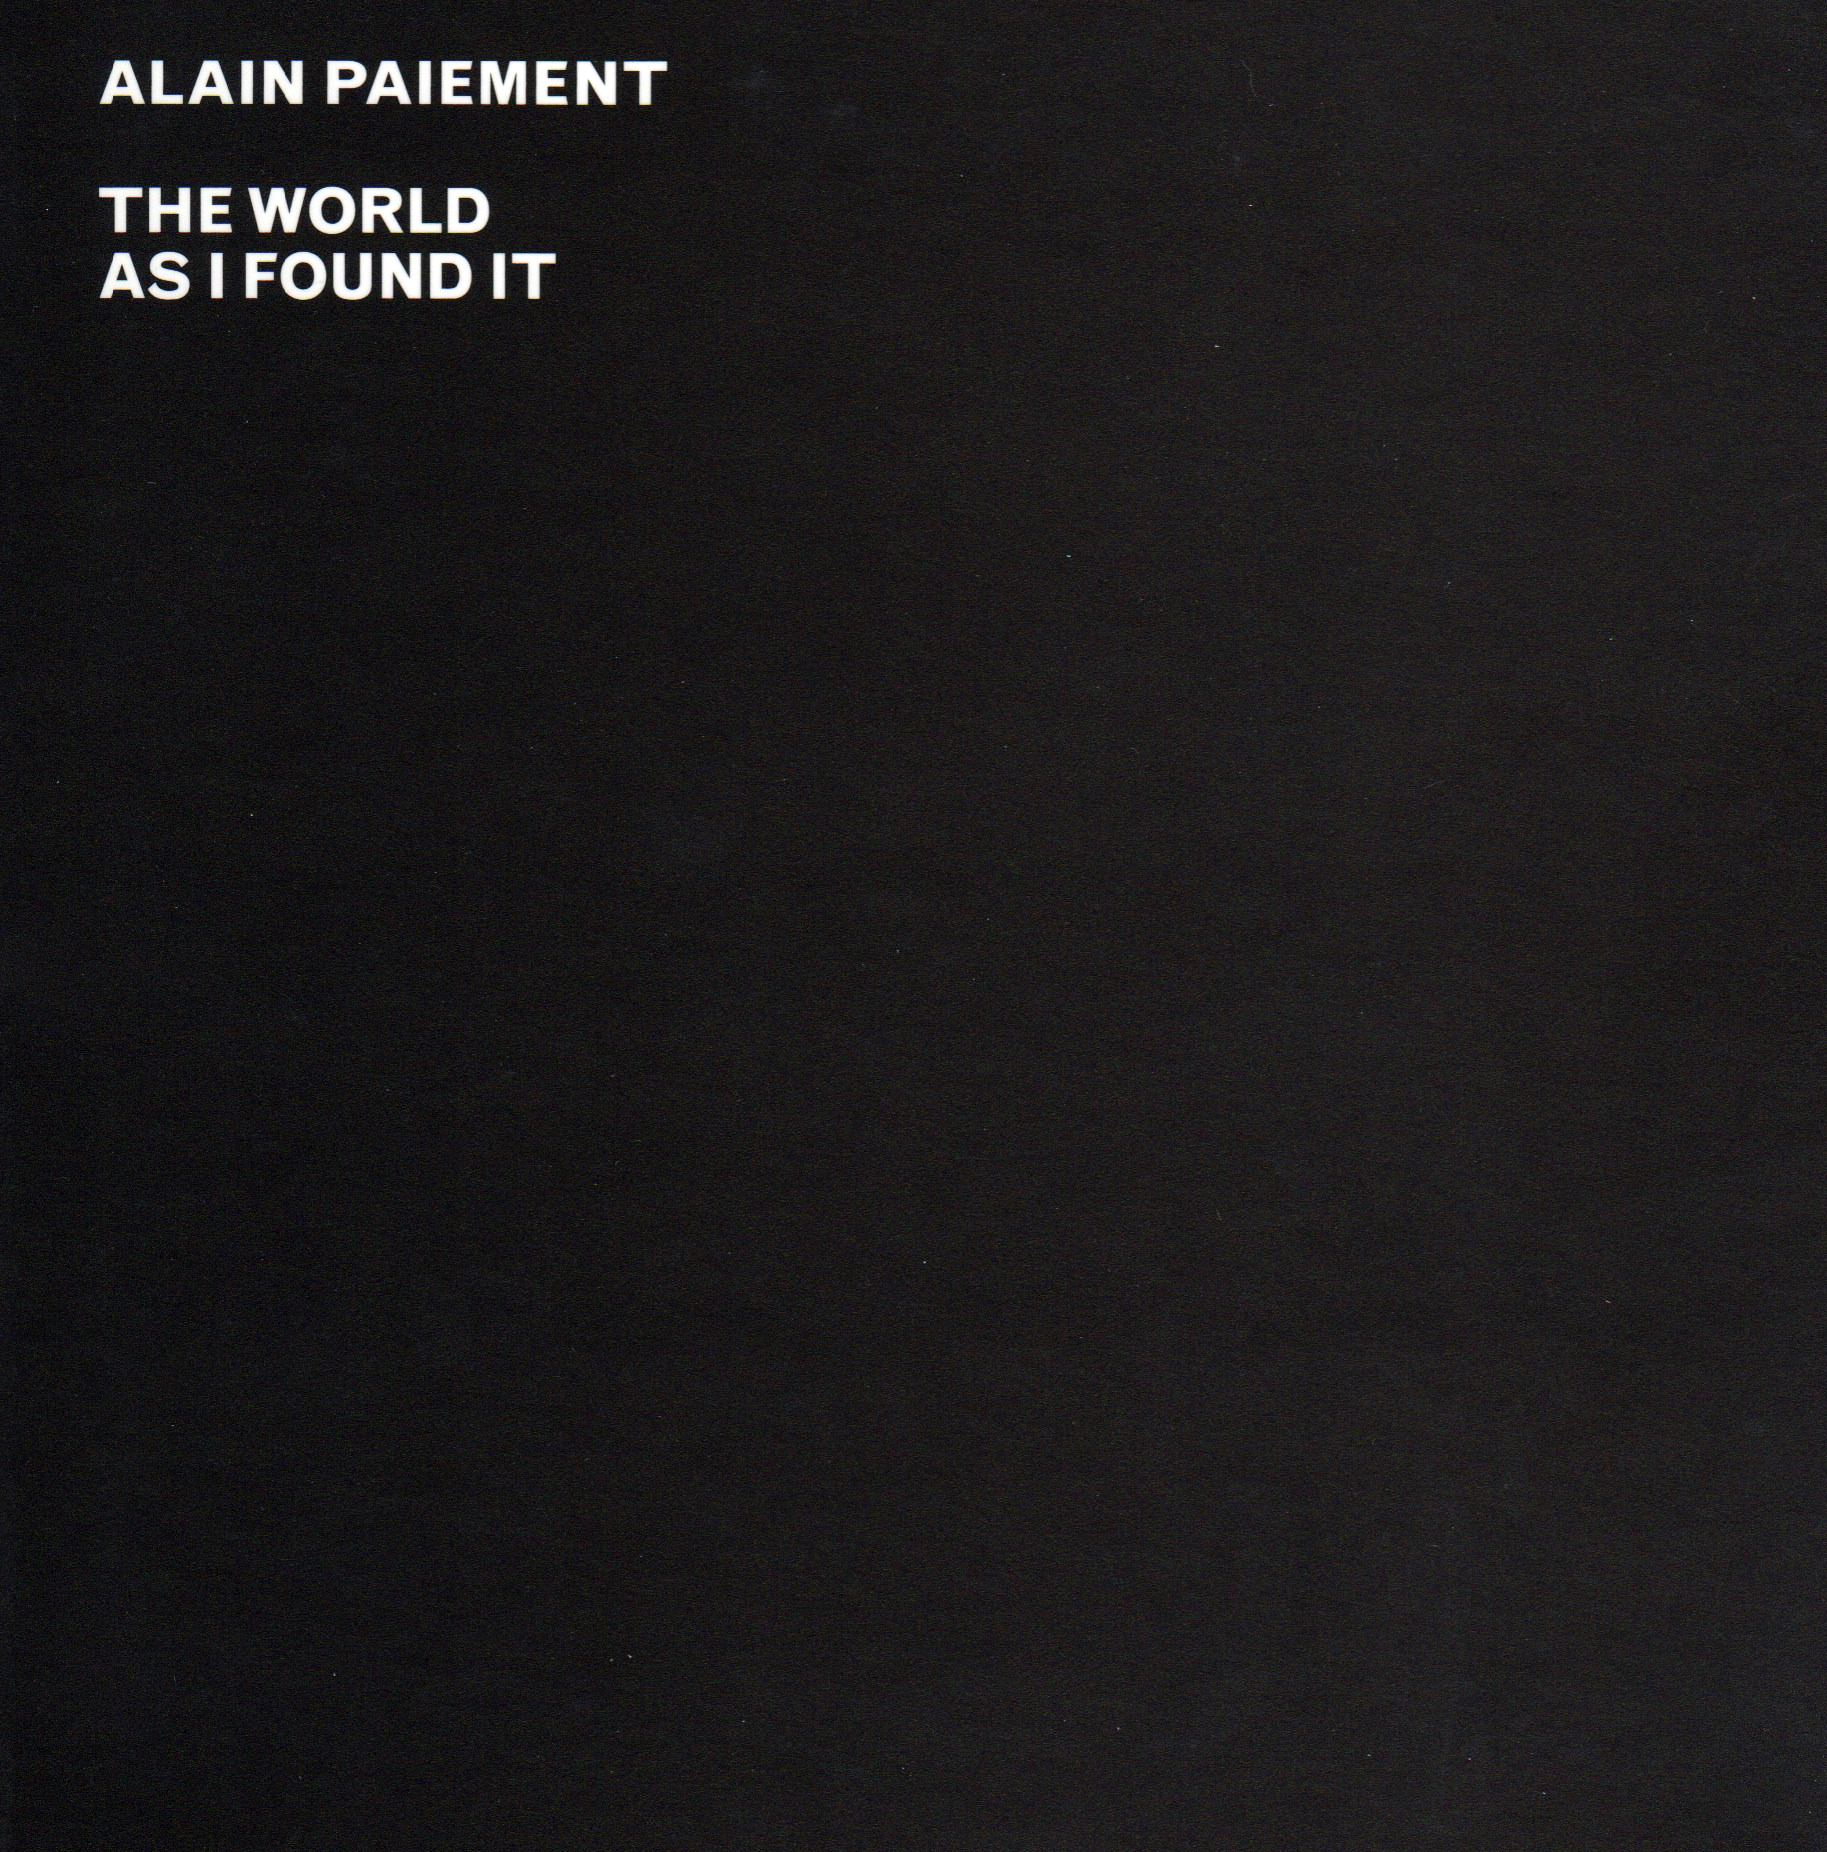 Alain Paiement: The Worlds As I Found It catalog cover